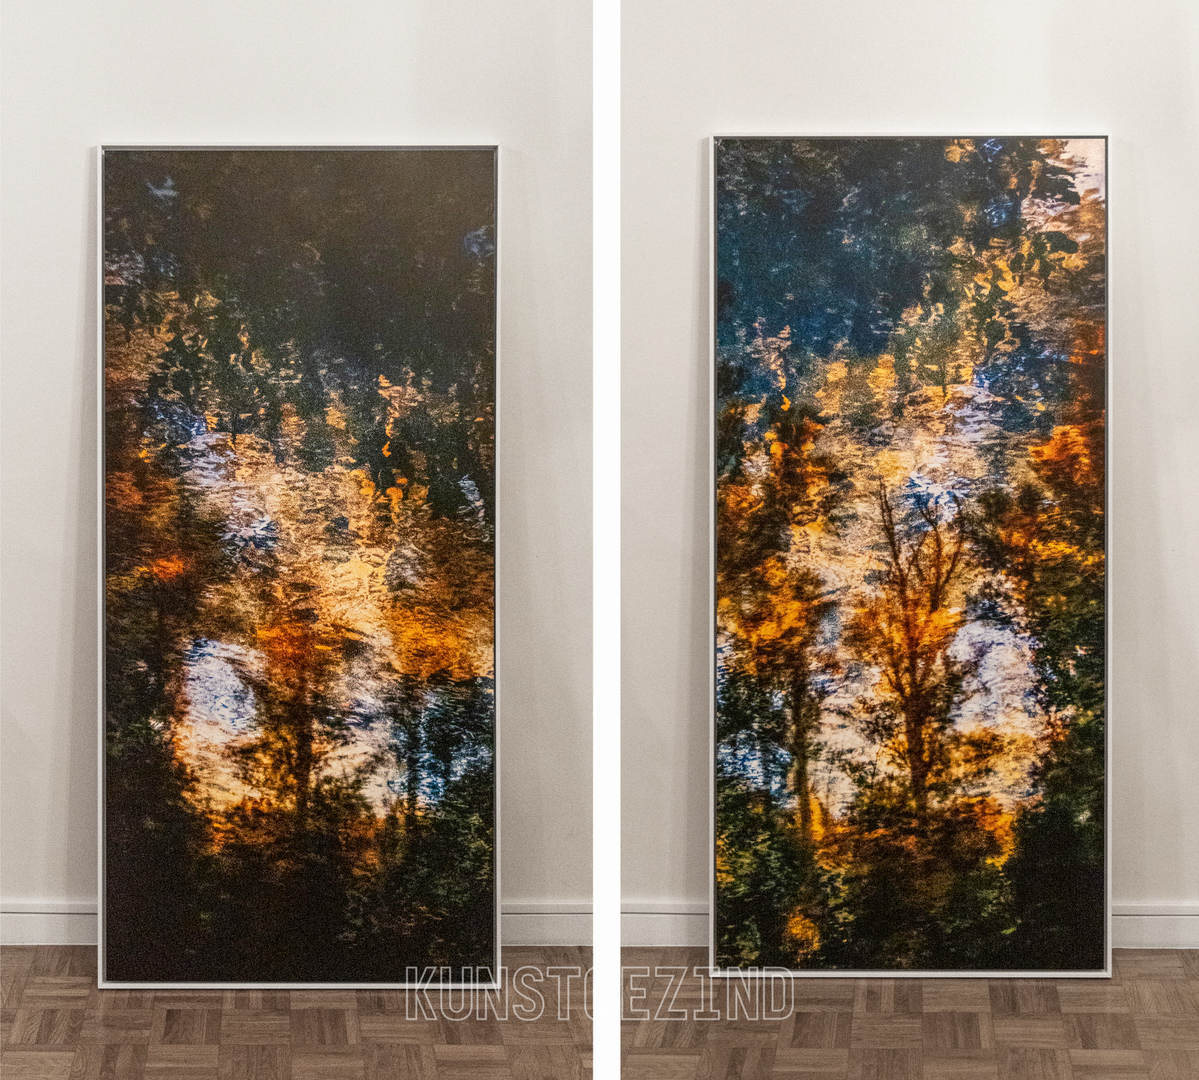 Variations on a treescape, a diptych